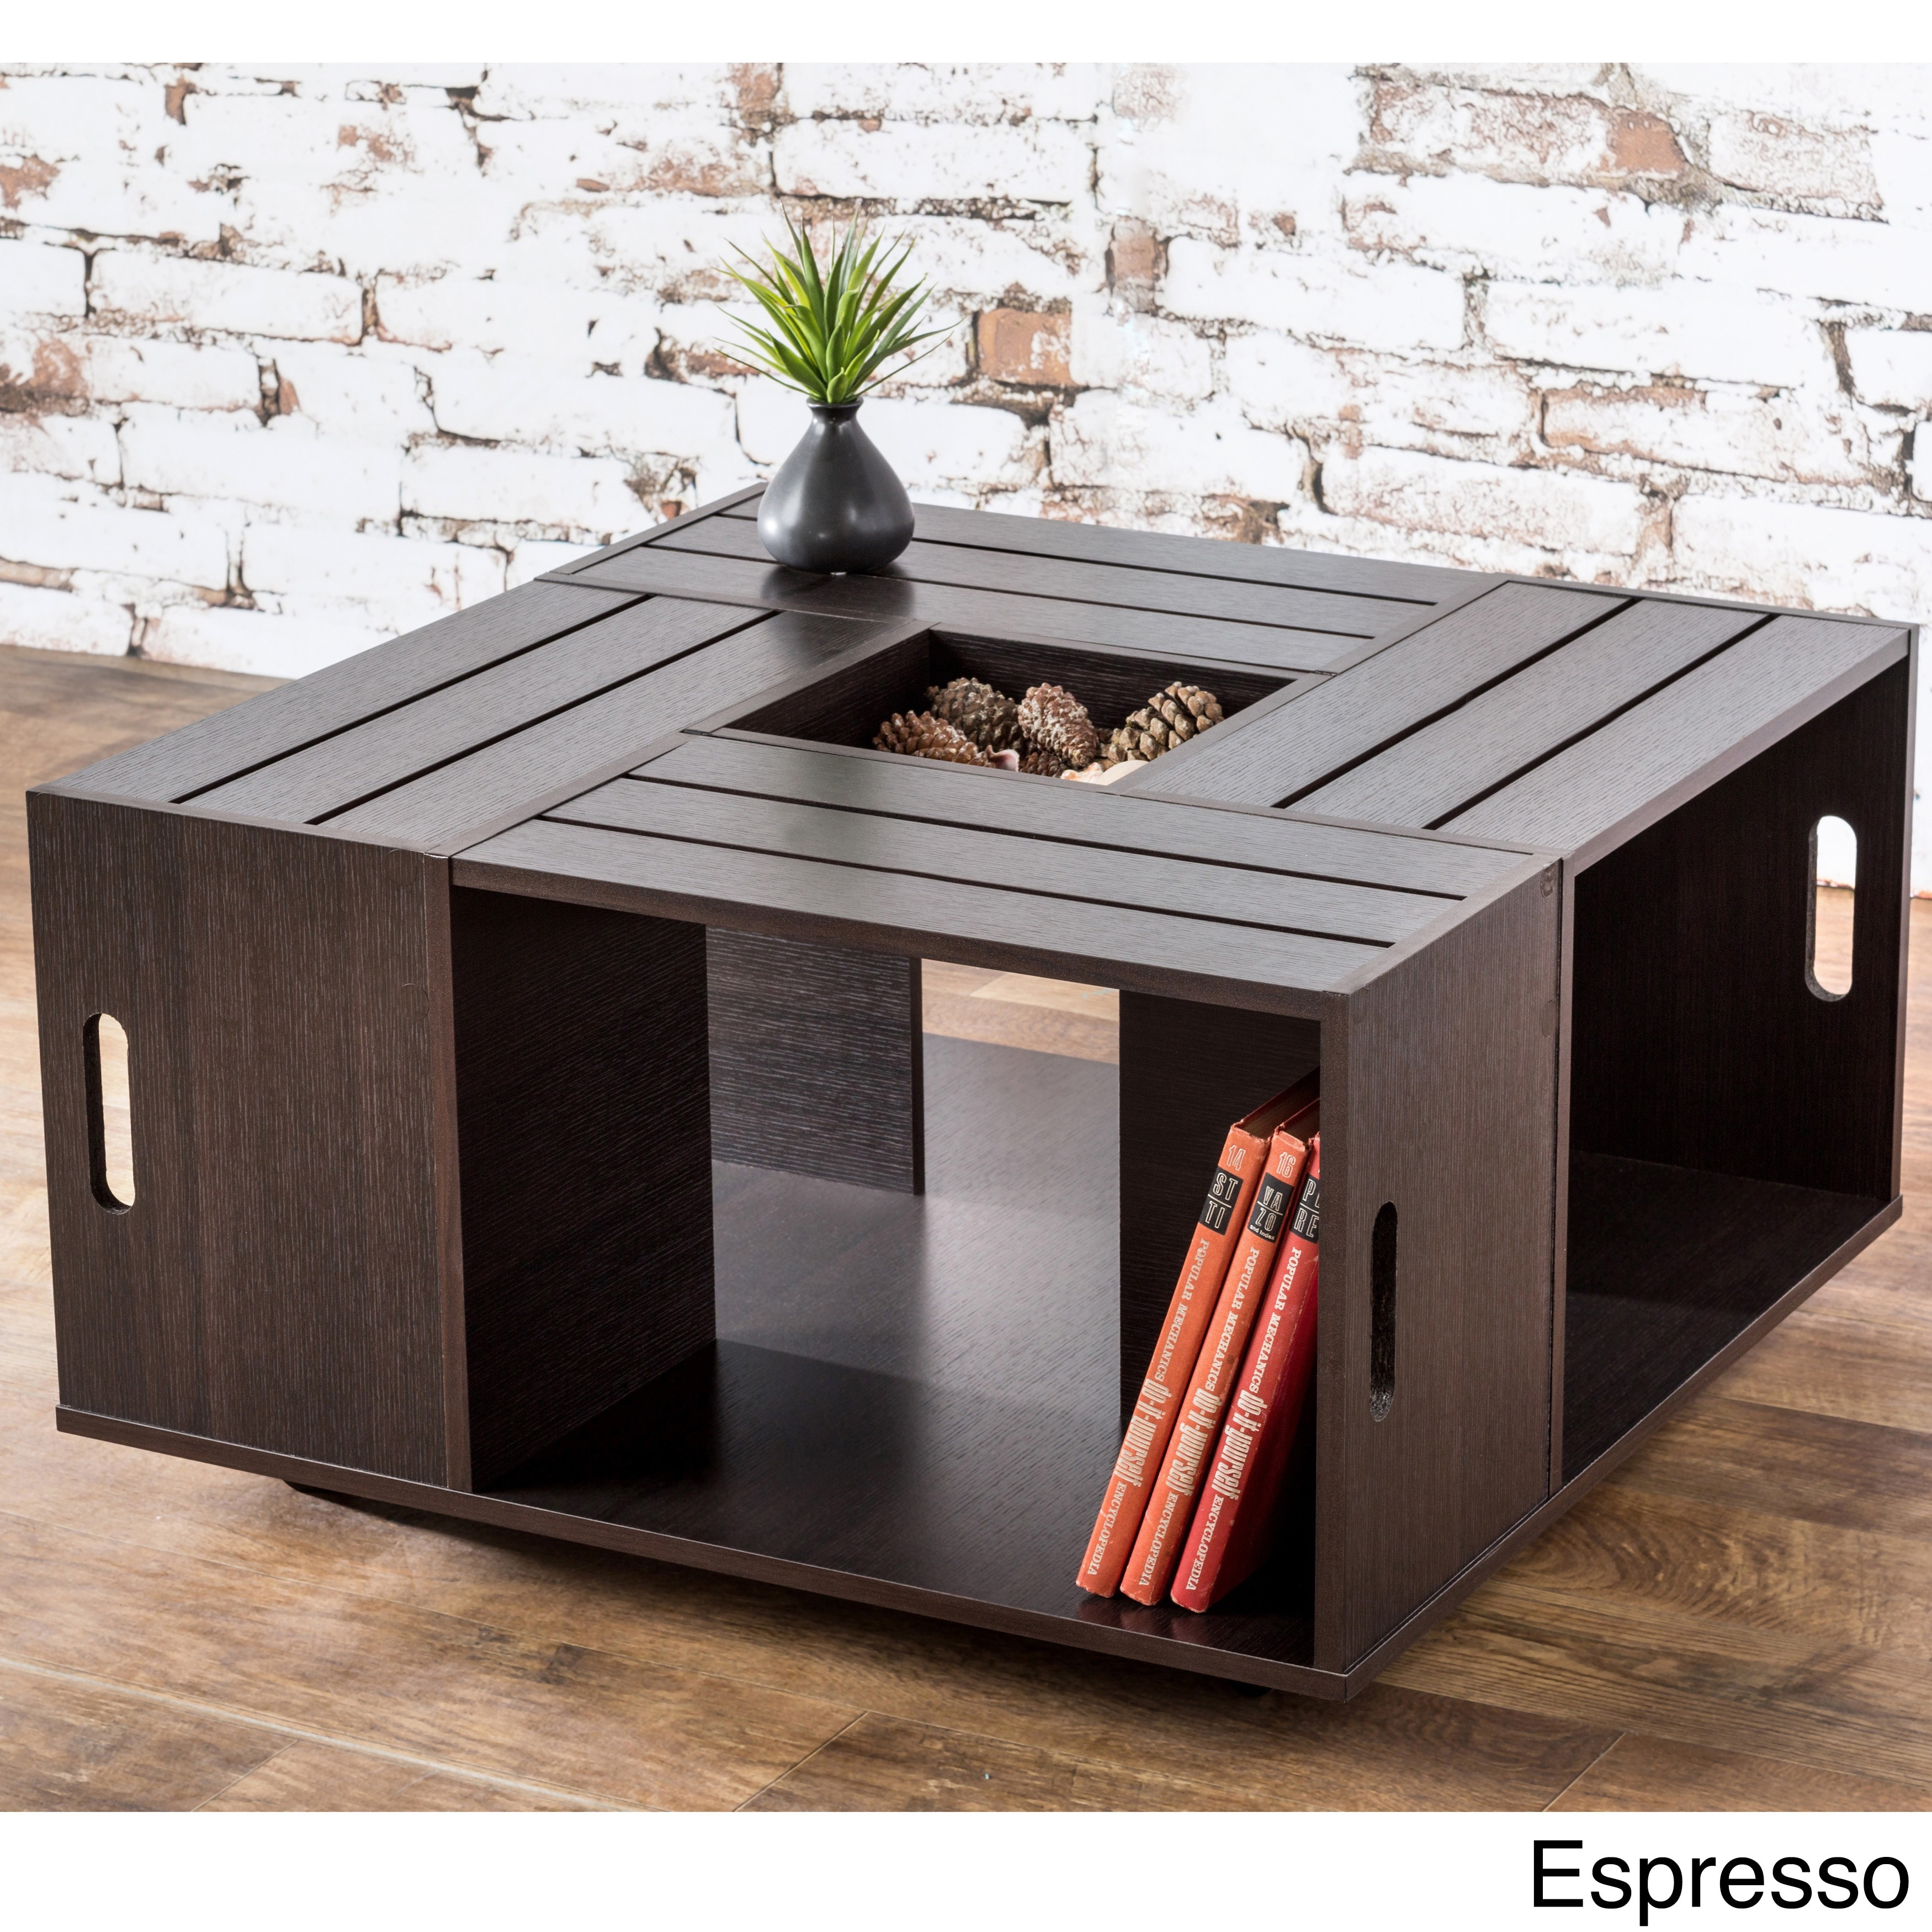 Furniture of America 'The Crate' Square Coffee Table with...